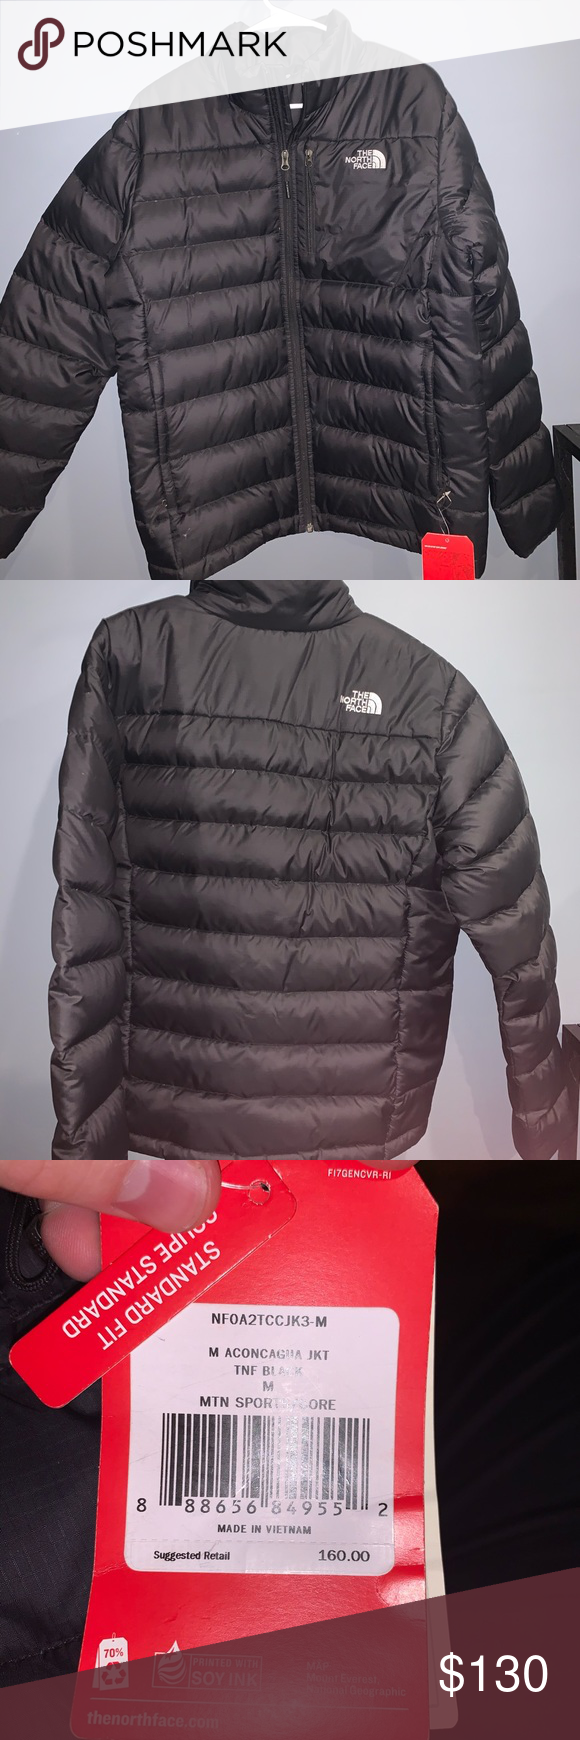 The North Face Jacket Men S New With Tags North Face Jacket The North Face North Face Coat [ 1740 x 580 Pixel ]